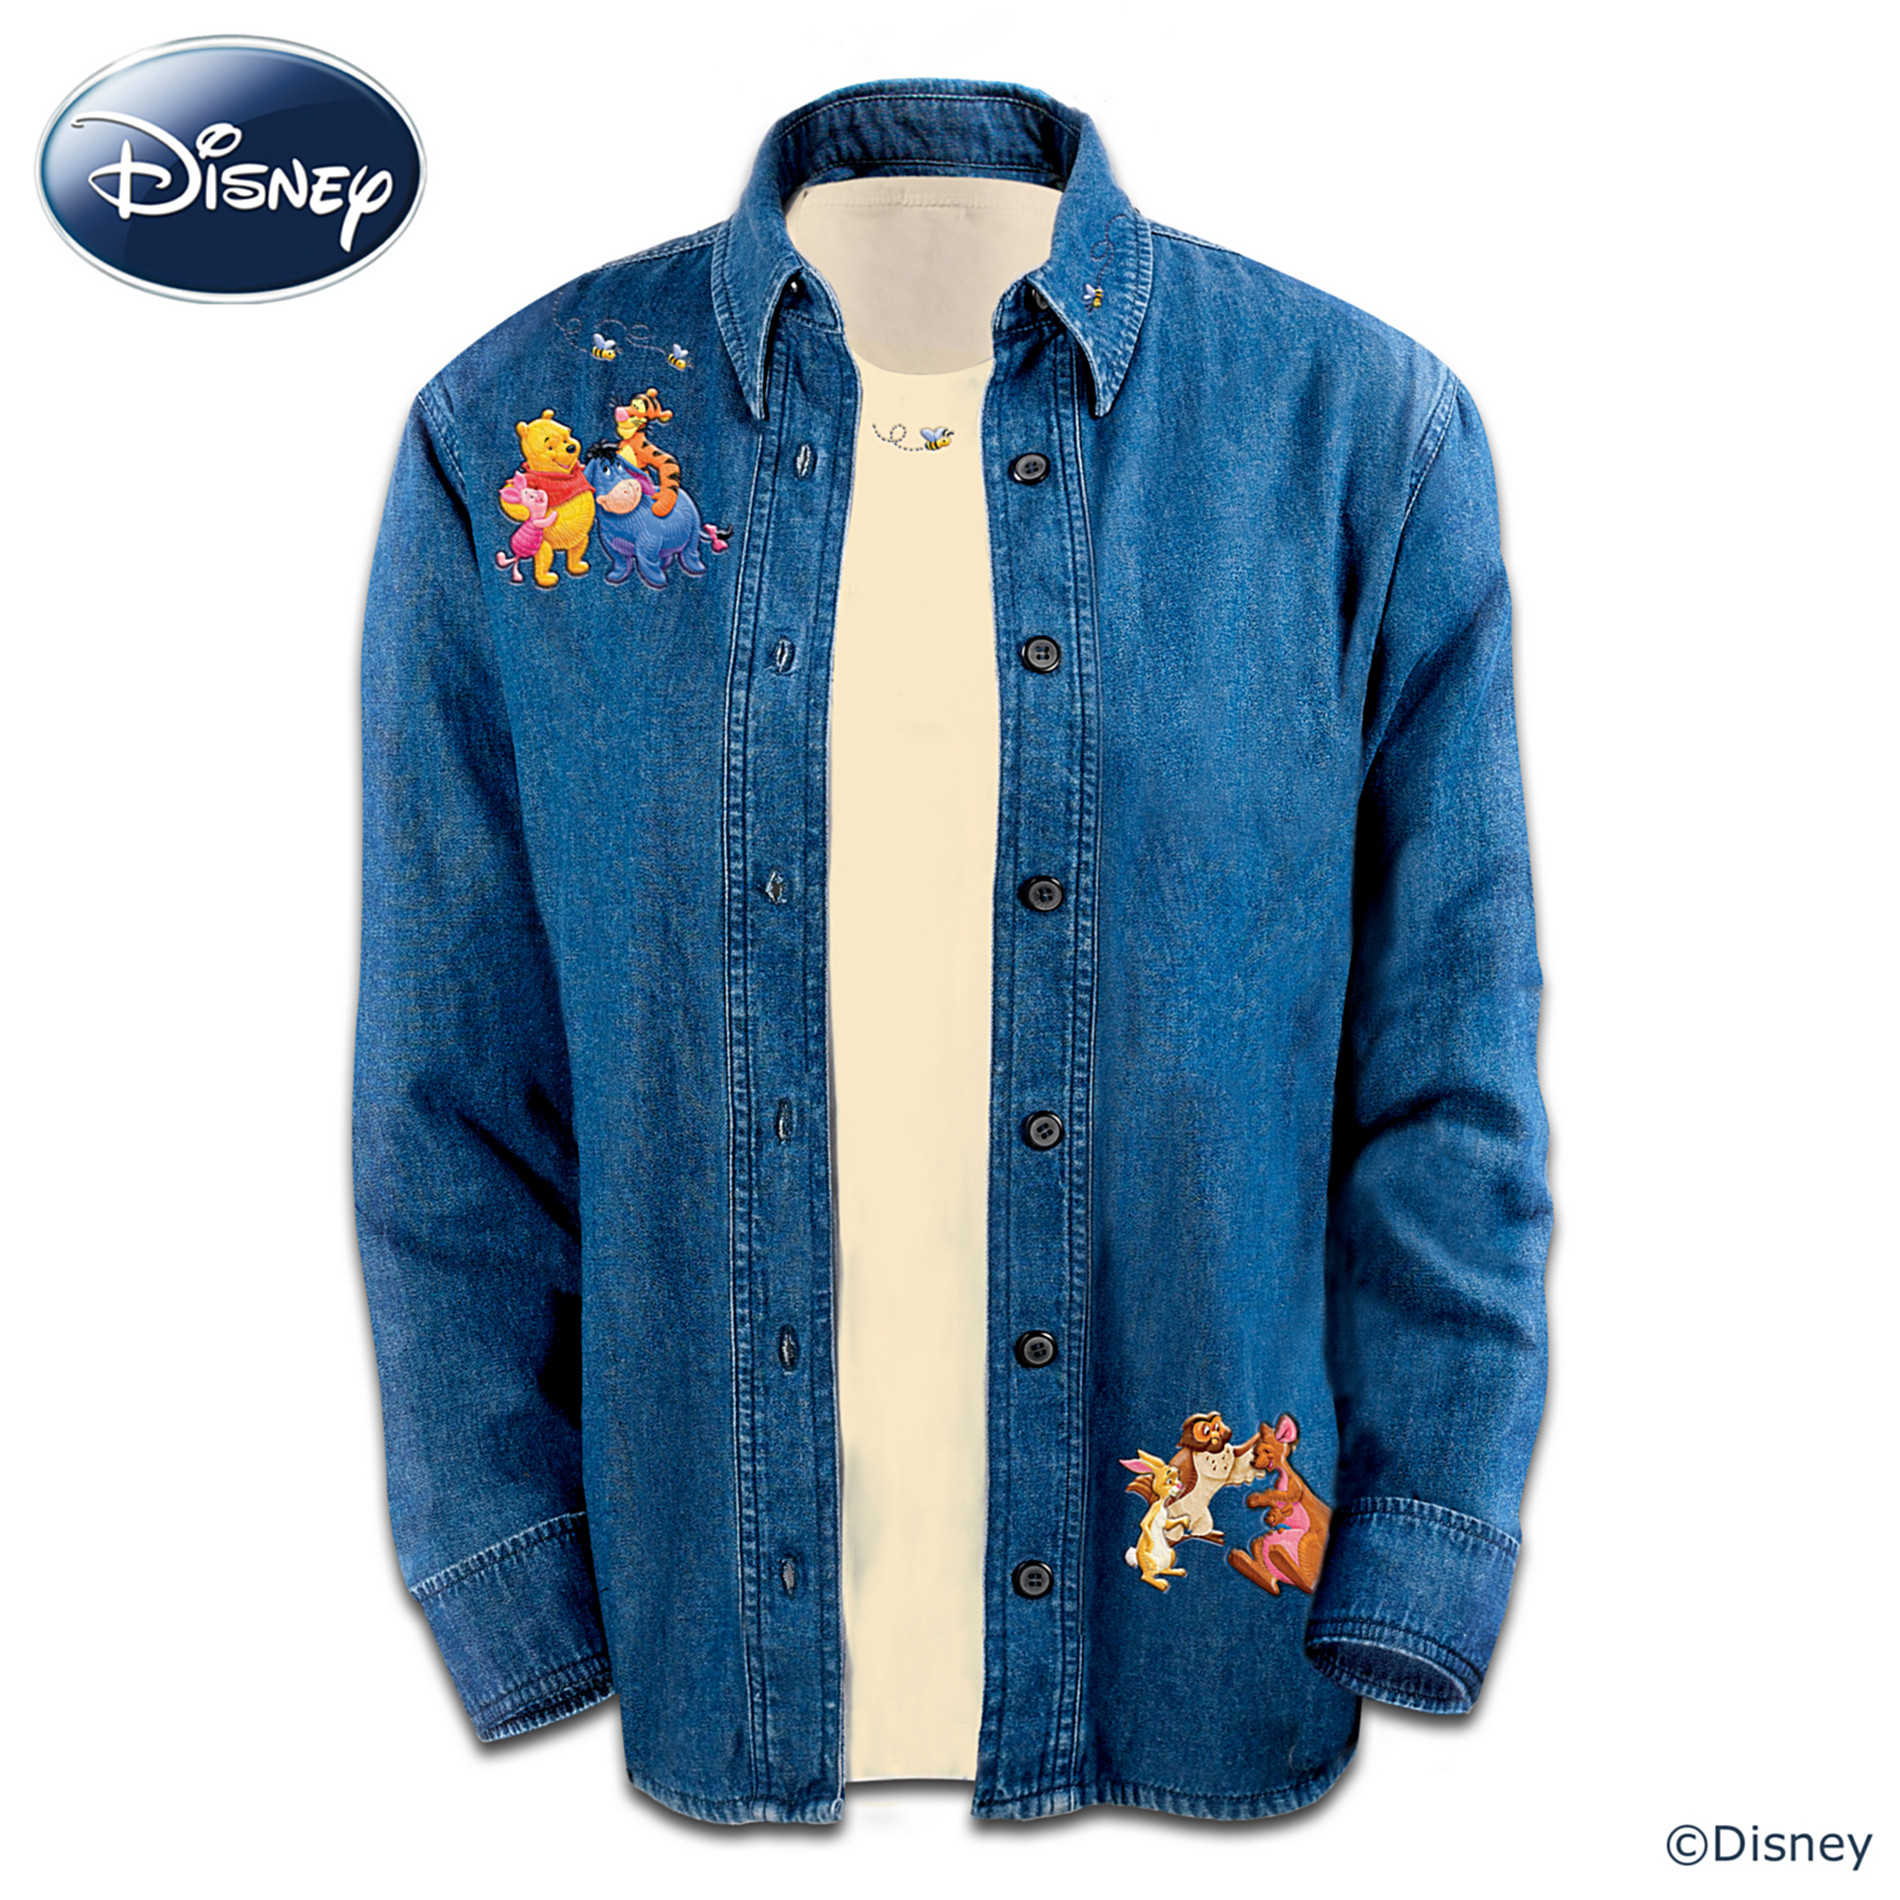 The Bradford Exchange Disney Winnie The Pooh Characters Shirt Set: It's More Fun With Friends at Sears.com